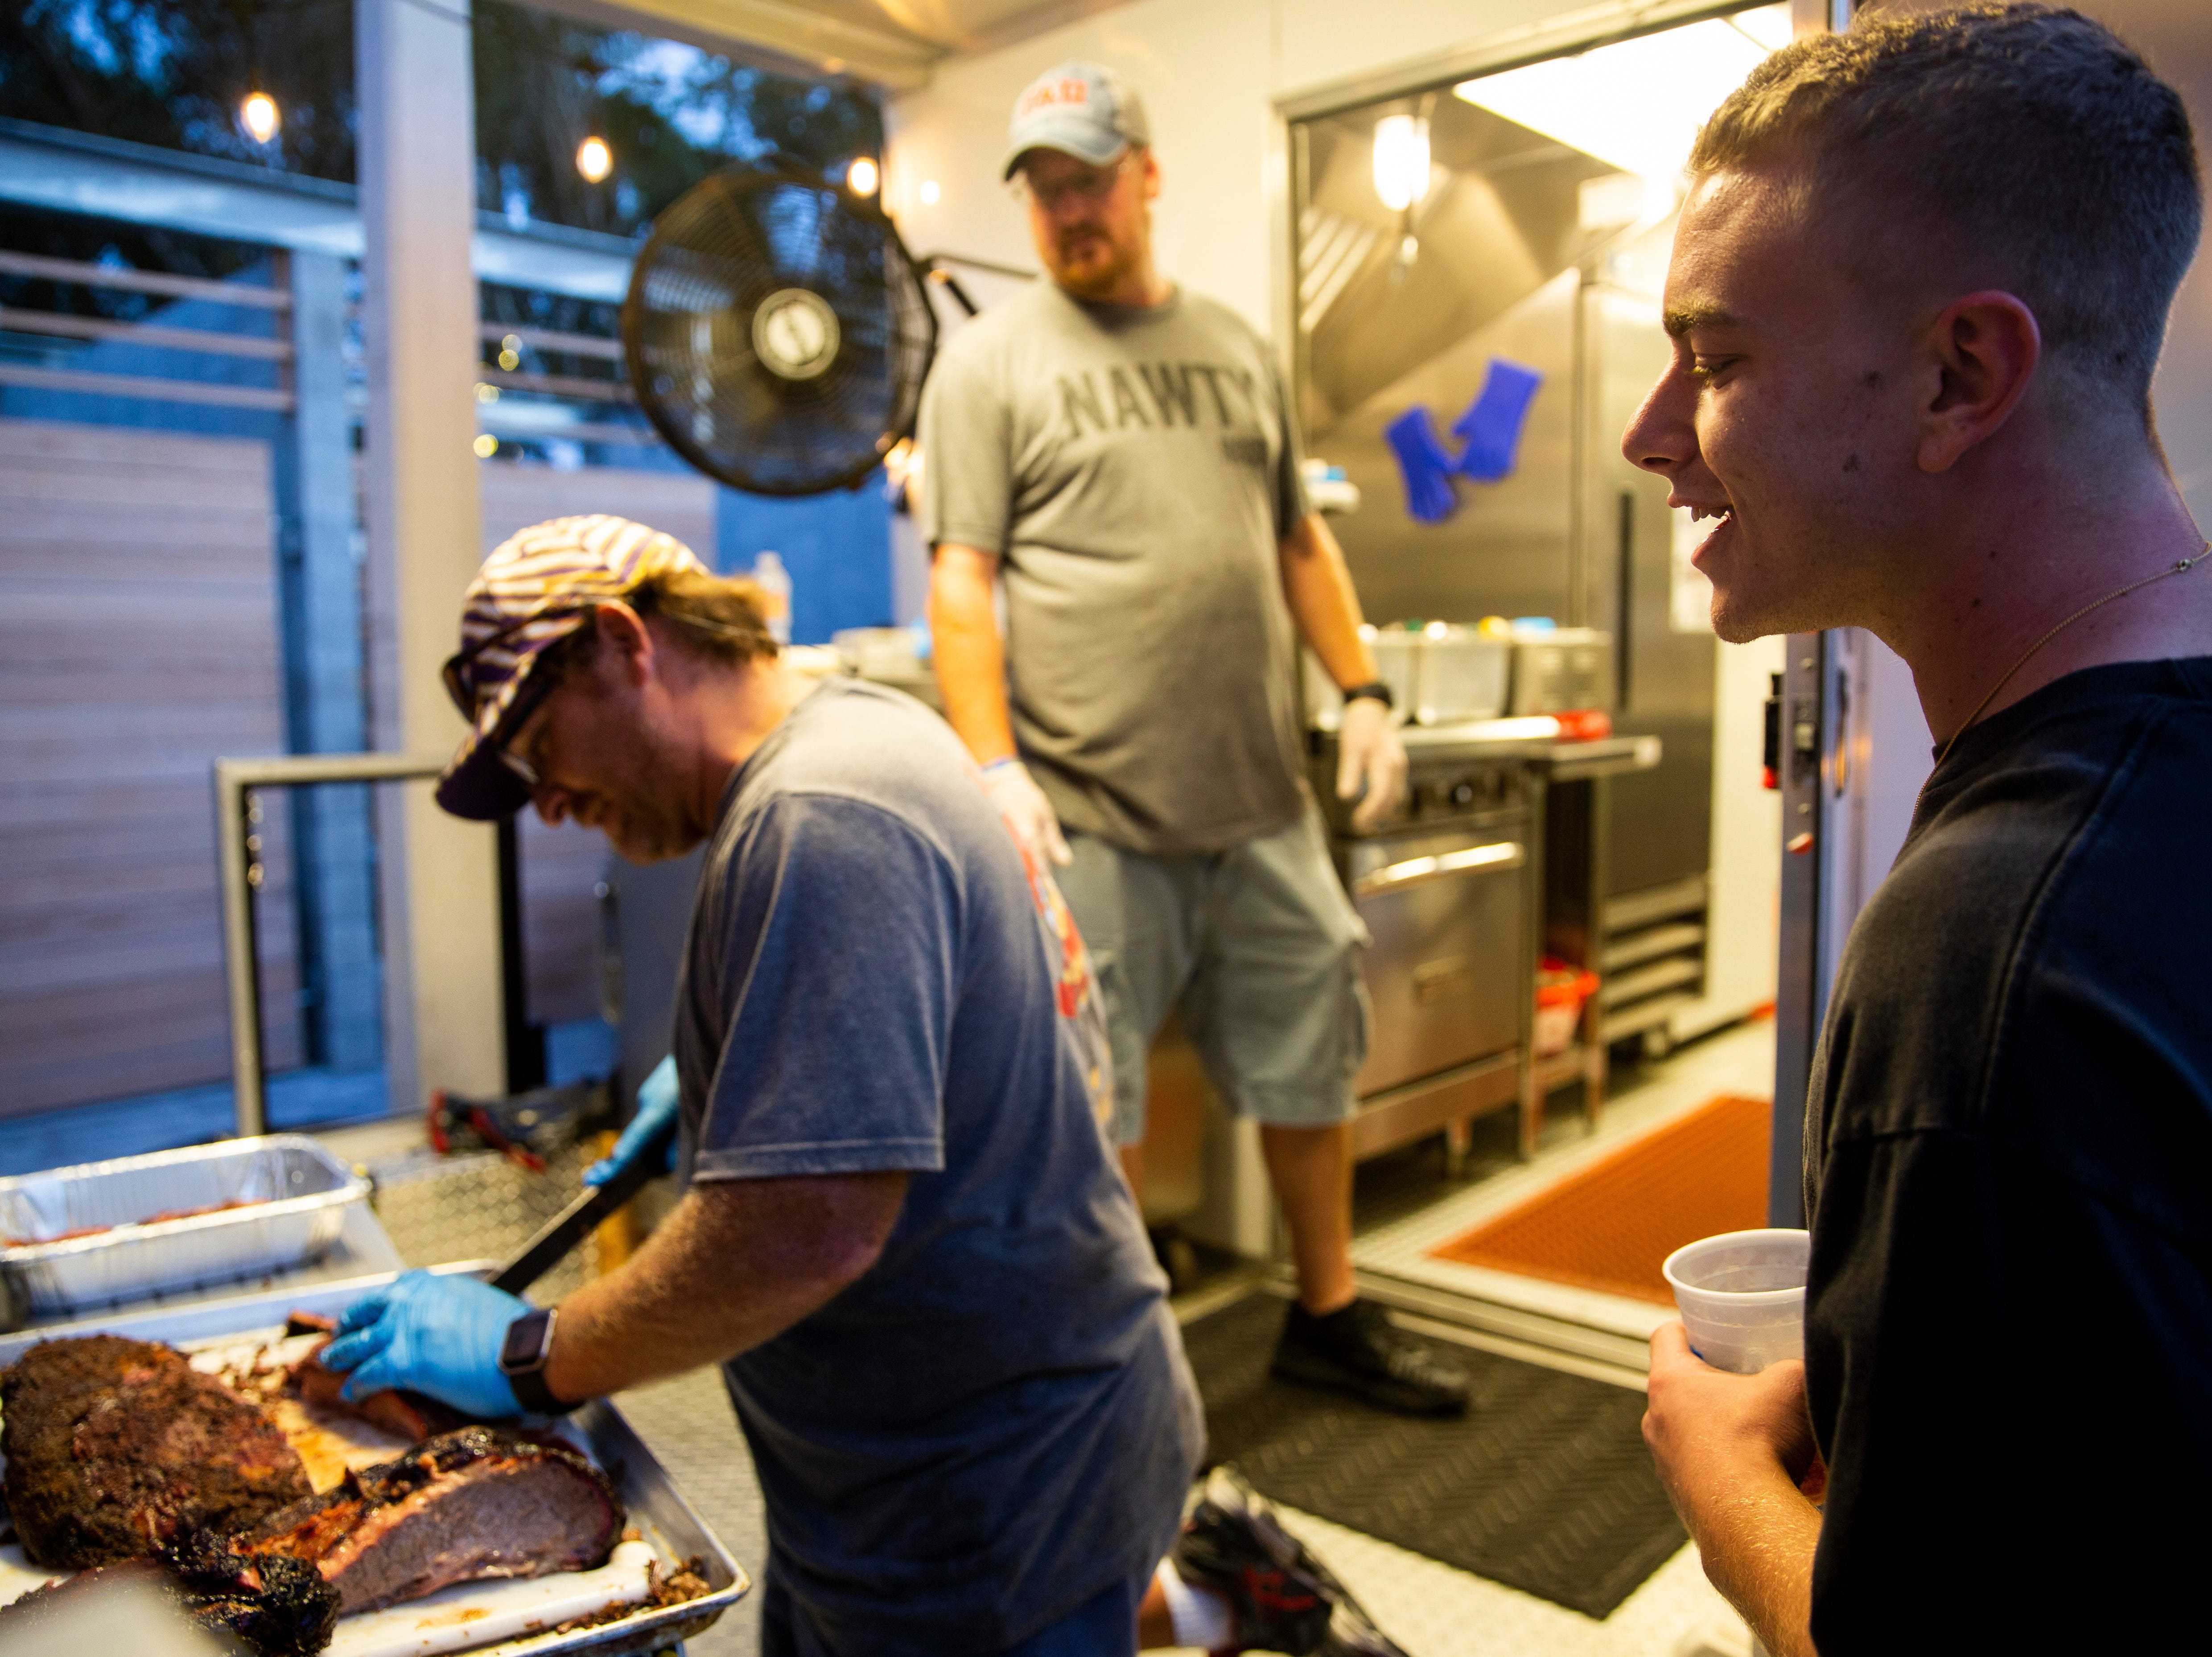 David Mazzarella, right, watches as Aric Tousignant slices a brisket at the Nawty Hogg BBQ food truck on Sunday, November 25, 2018, at Celebration Park in Naples.